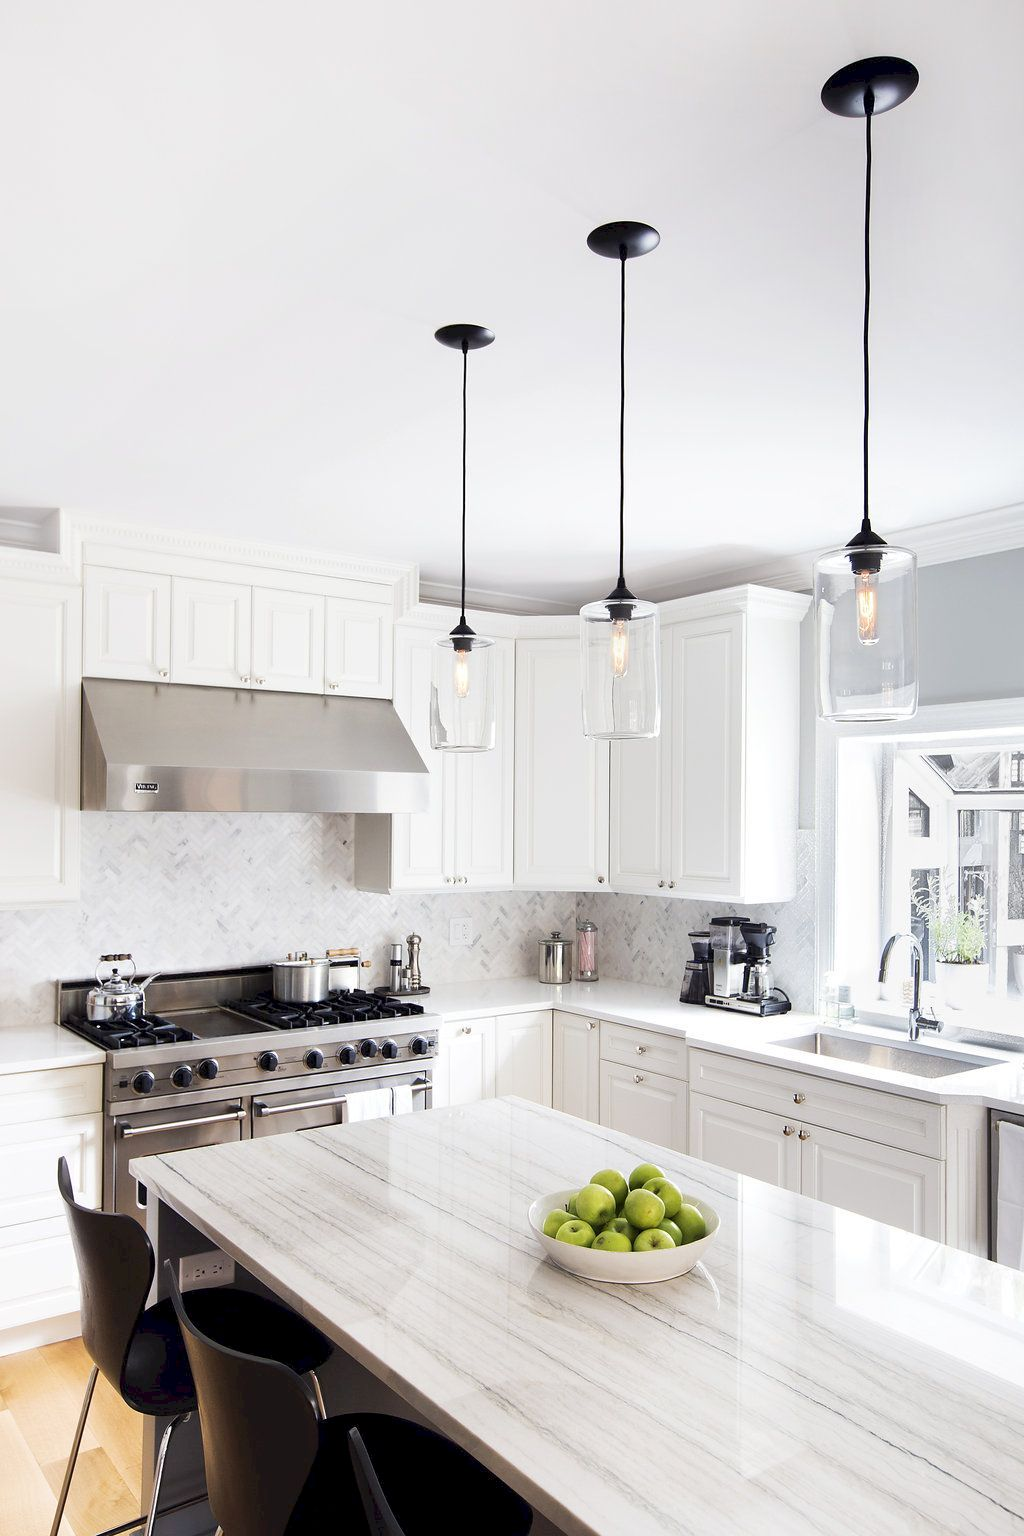 Decorative Kitchen Pendant Design with Modern and Classic Concept Part 10